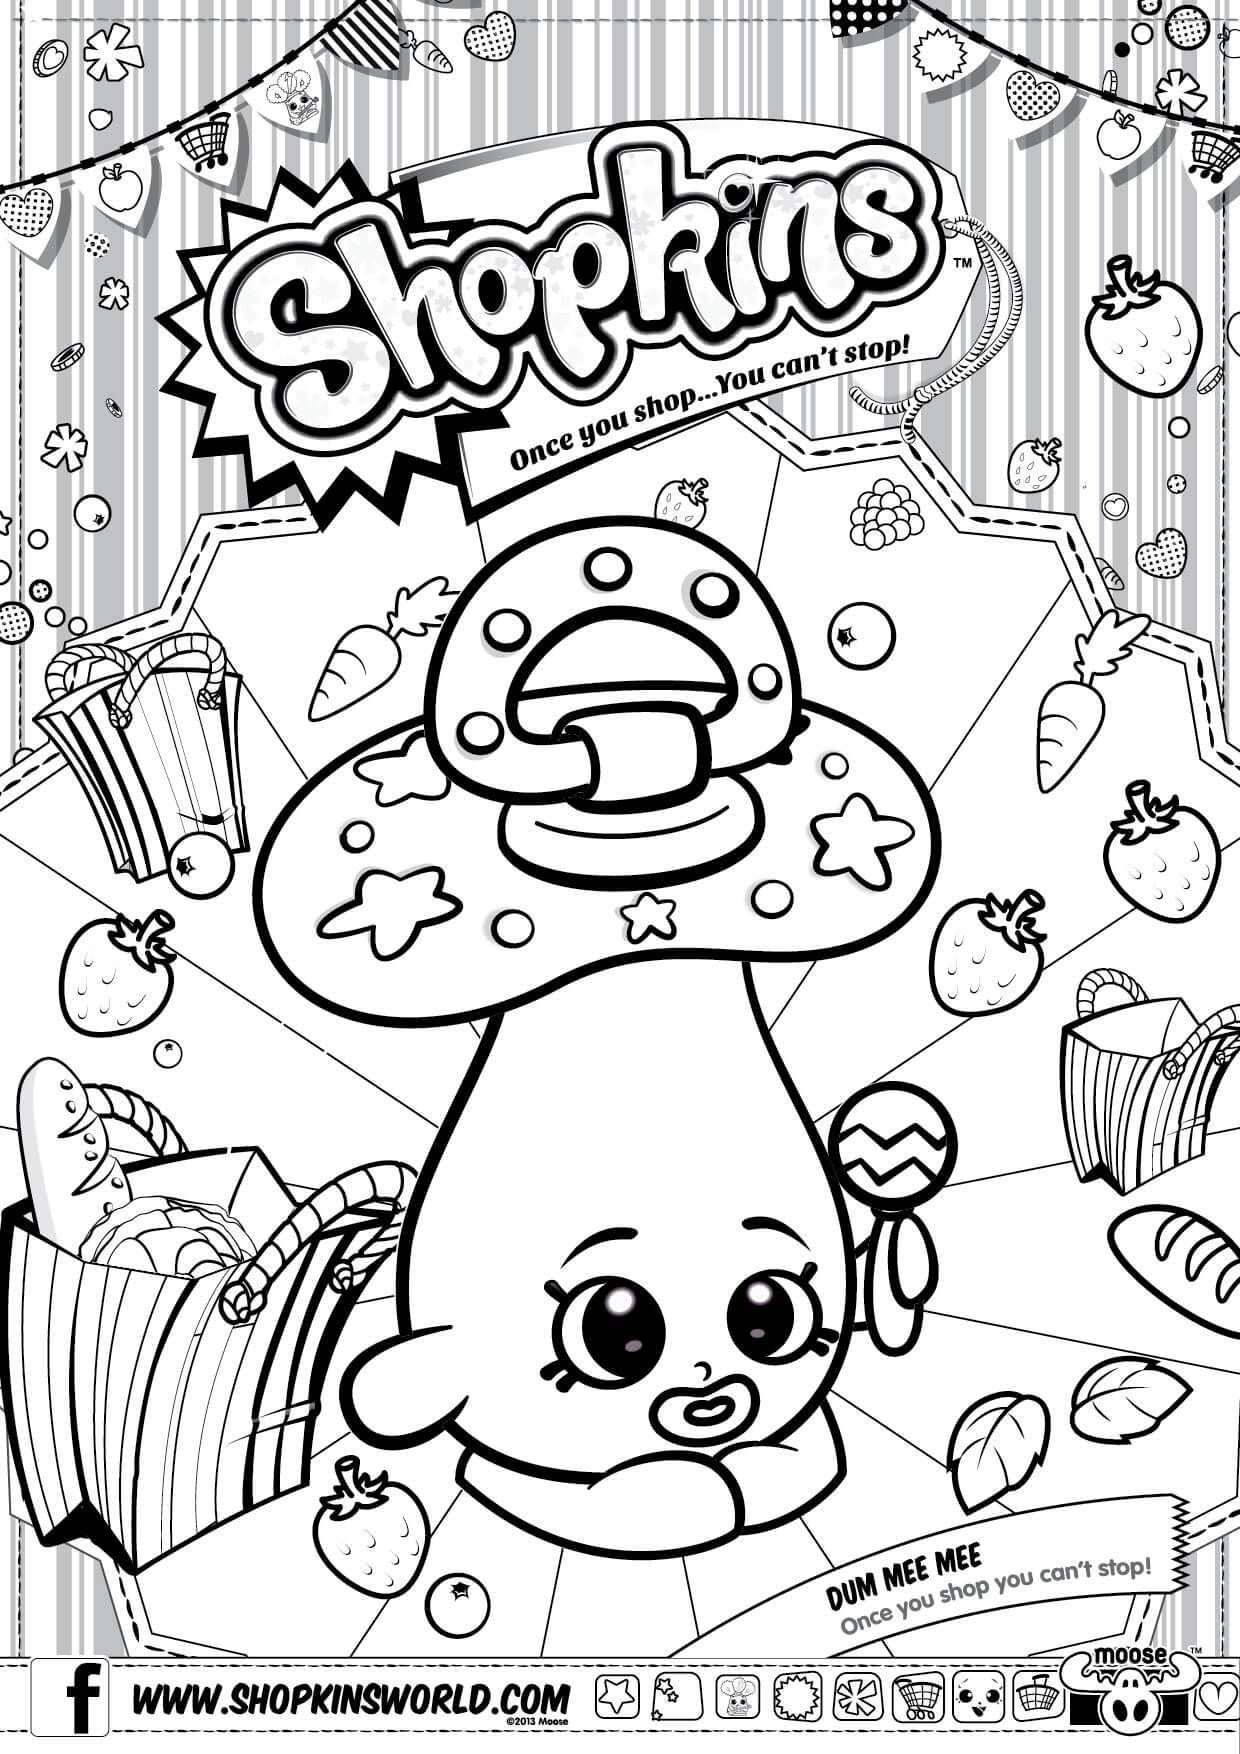 Shopkins Coloring Pages Season 2 Dum Mee Mee Coloring Pages